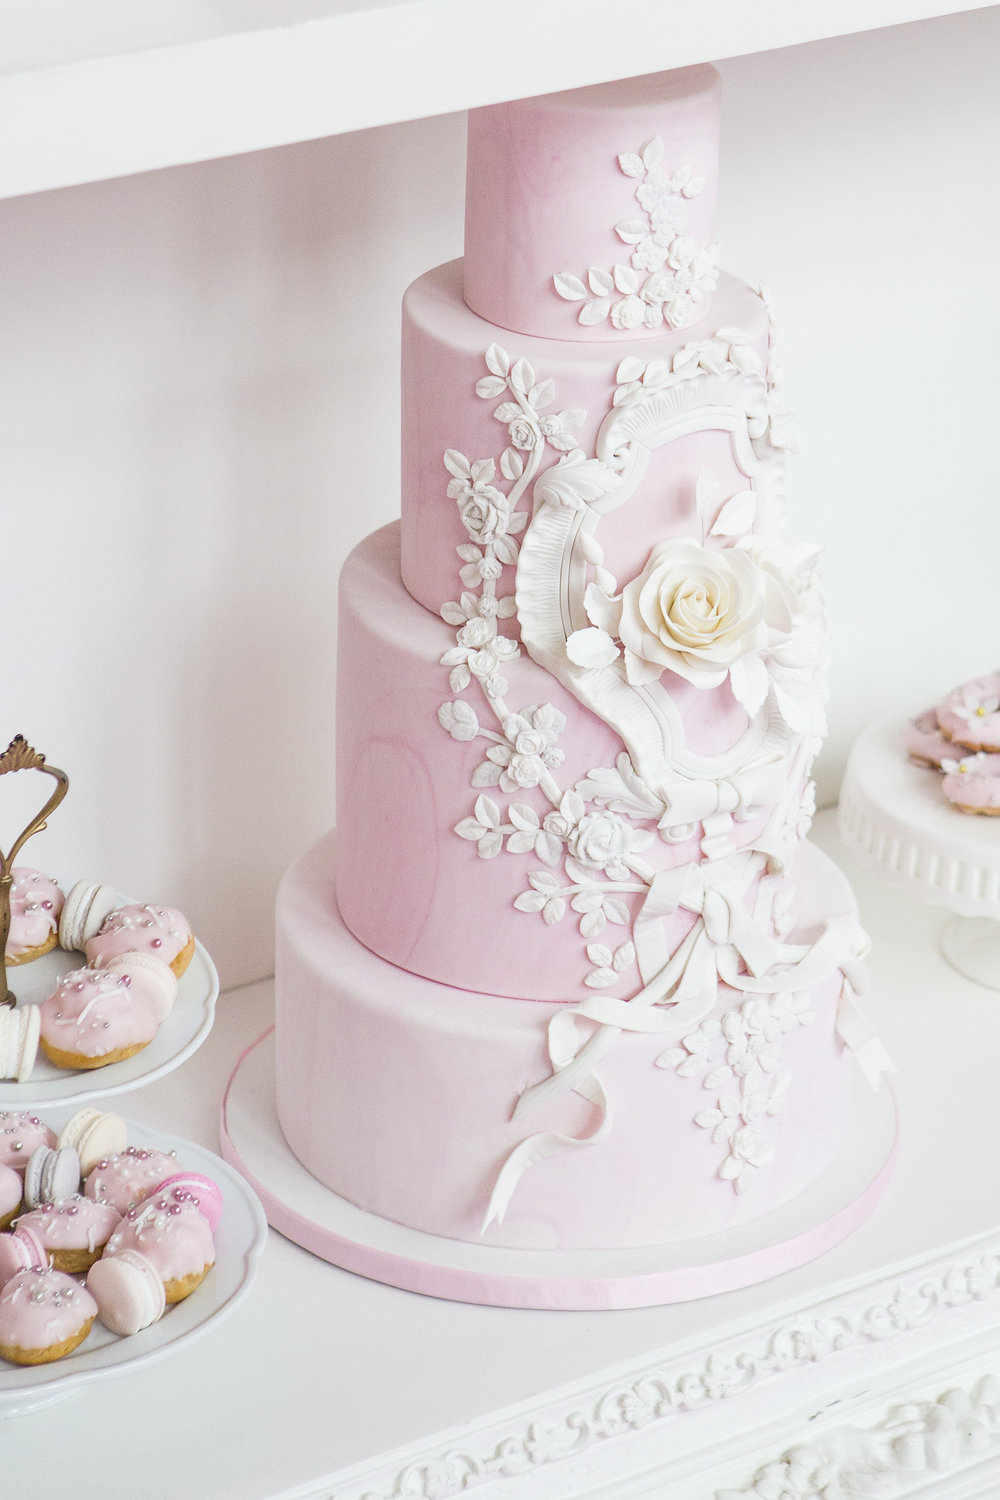 Cake - Dior Darling (Wedluxe)